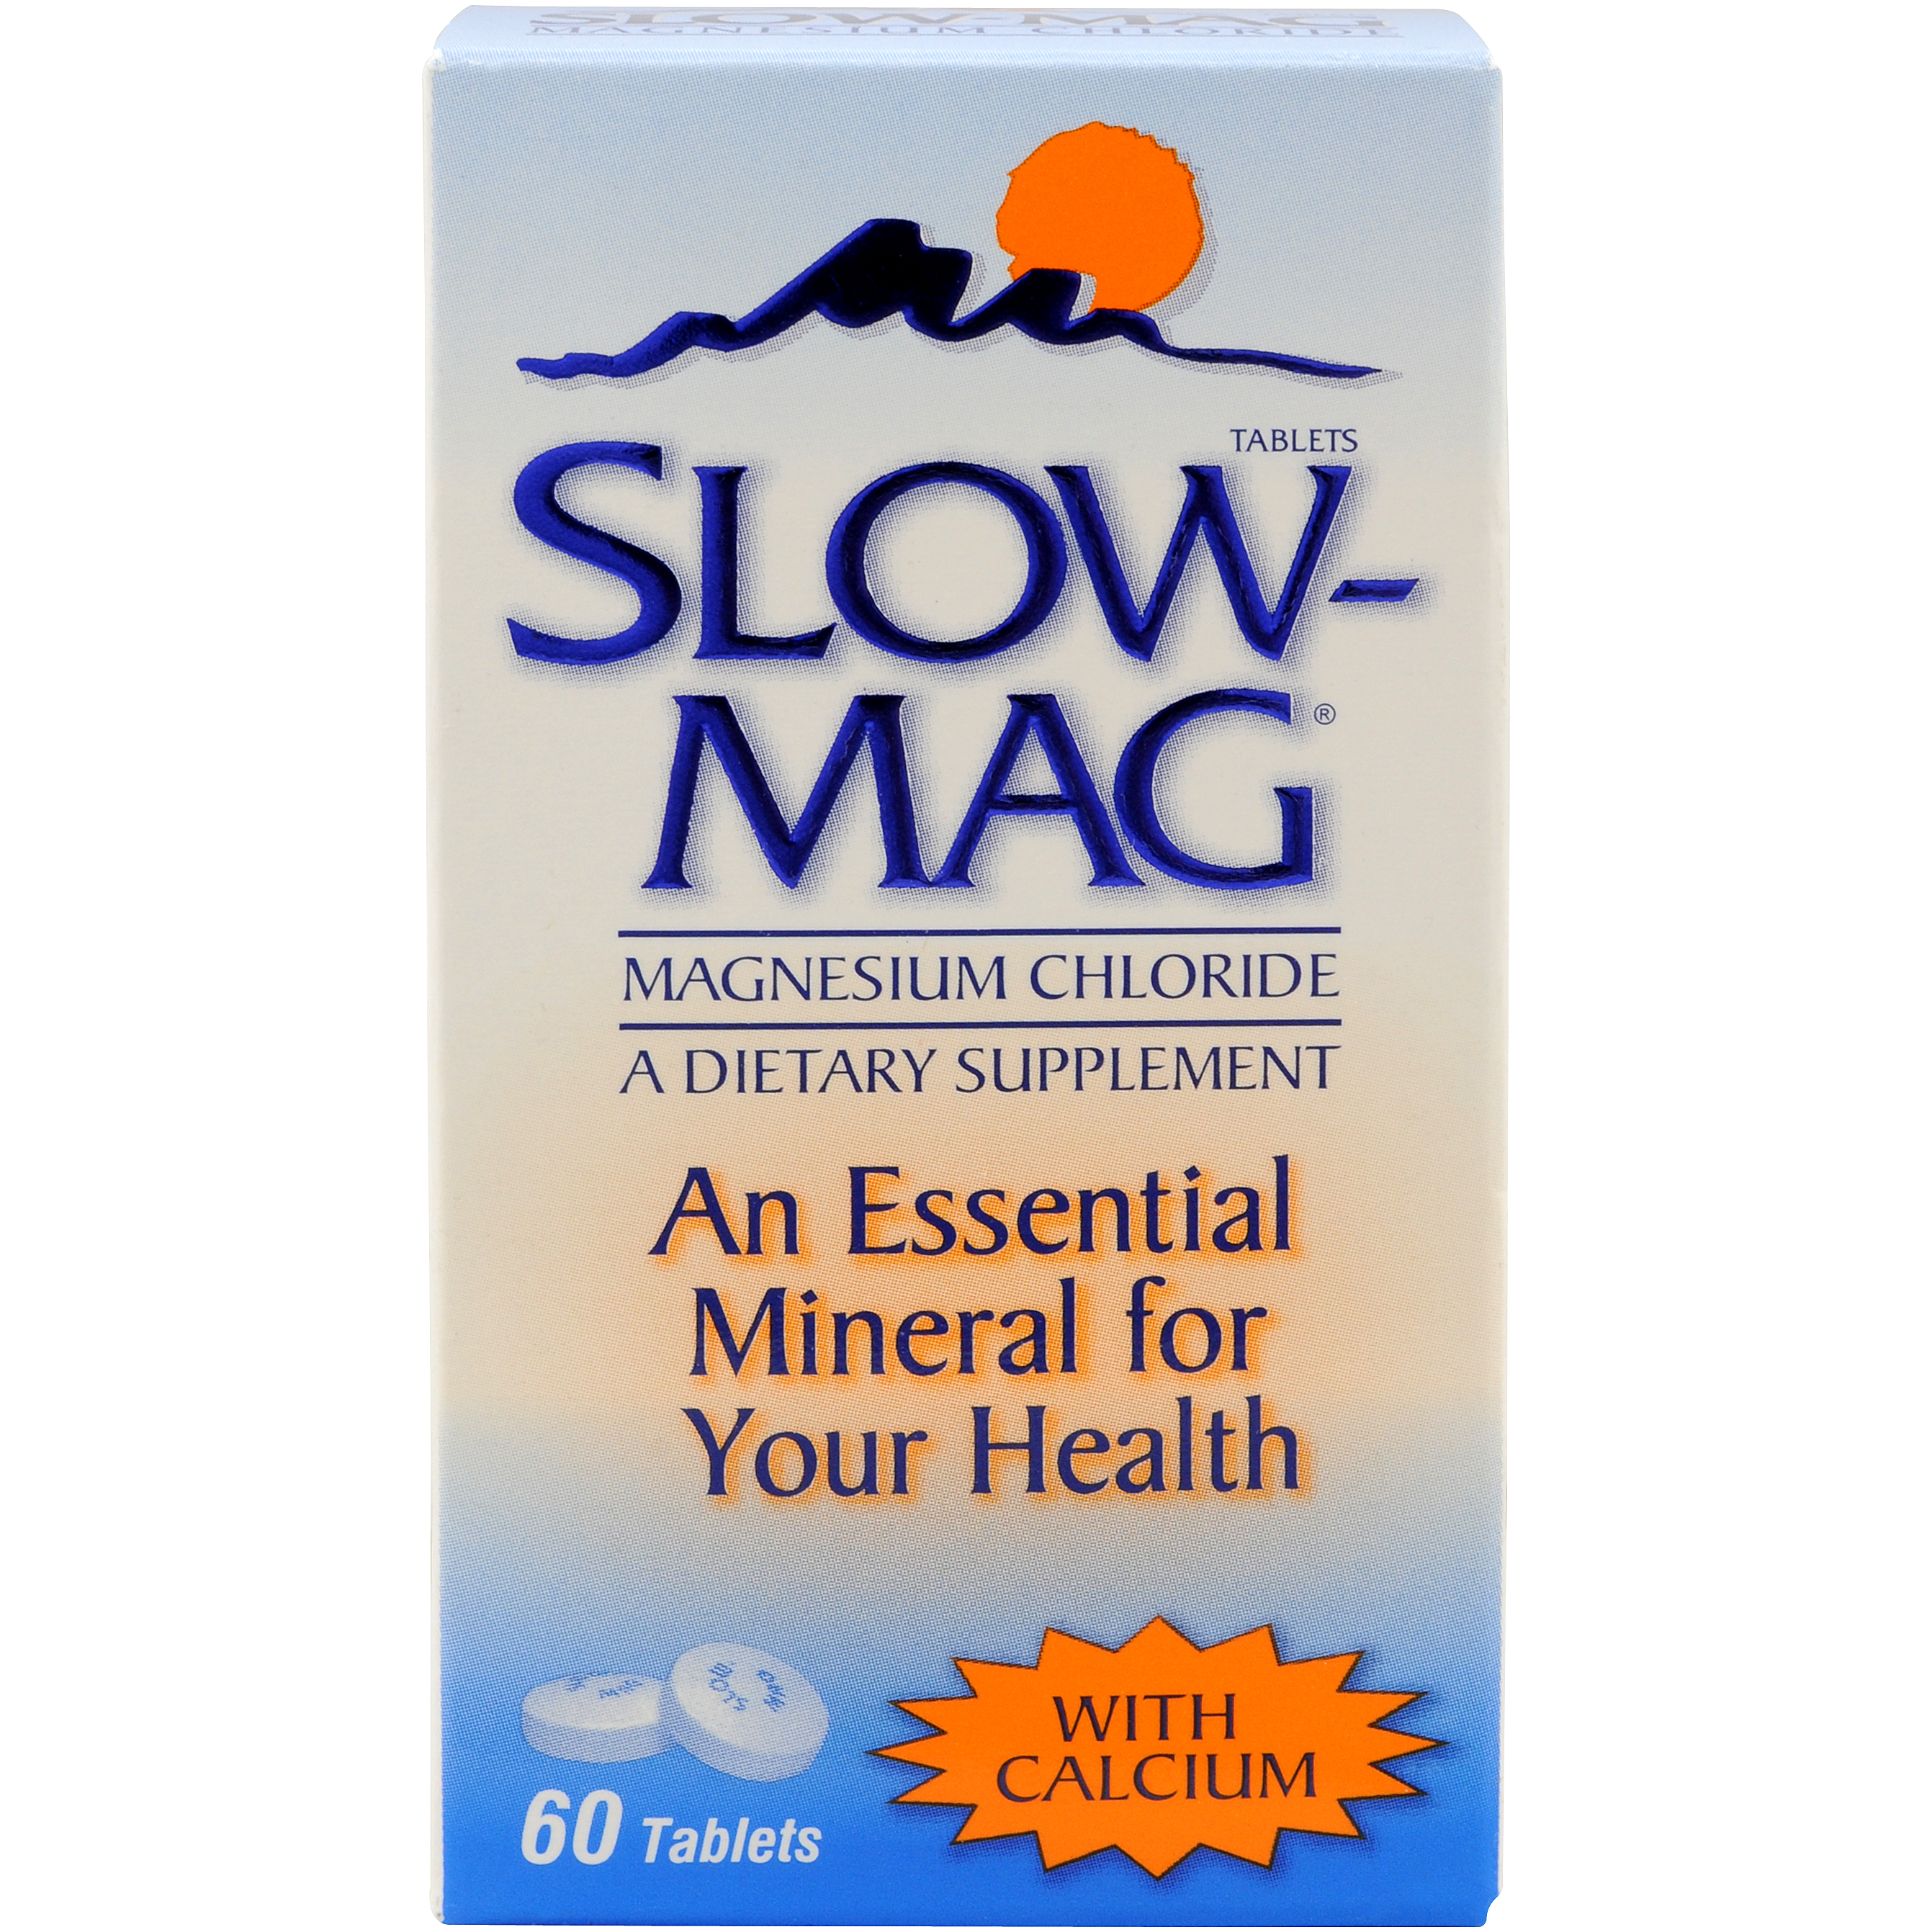 Slow-Mag Magnesium Chloride with Calcium Tablets, 60 ct